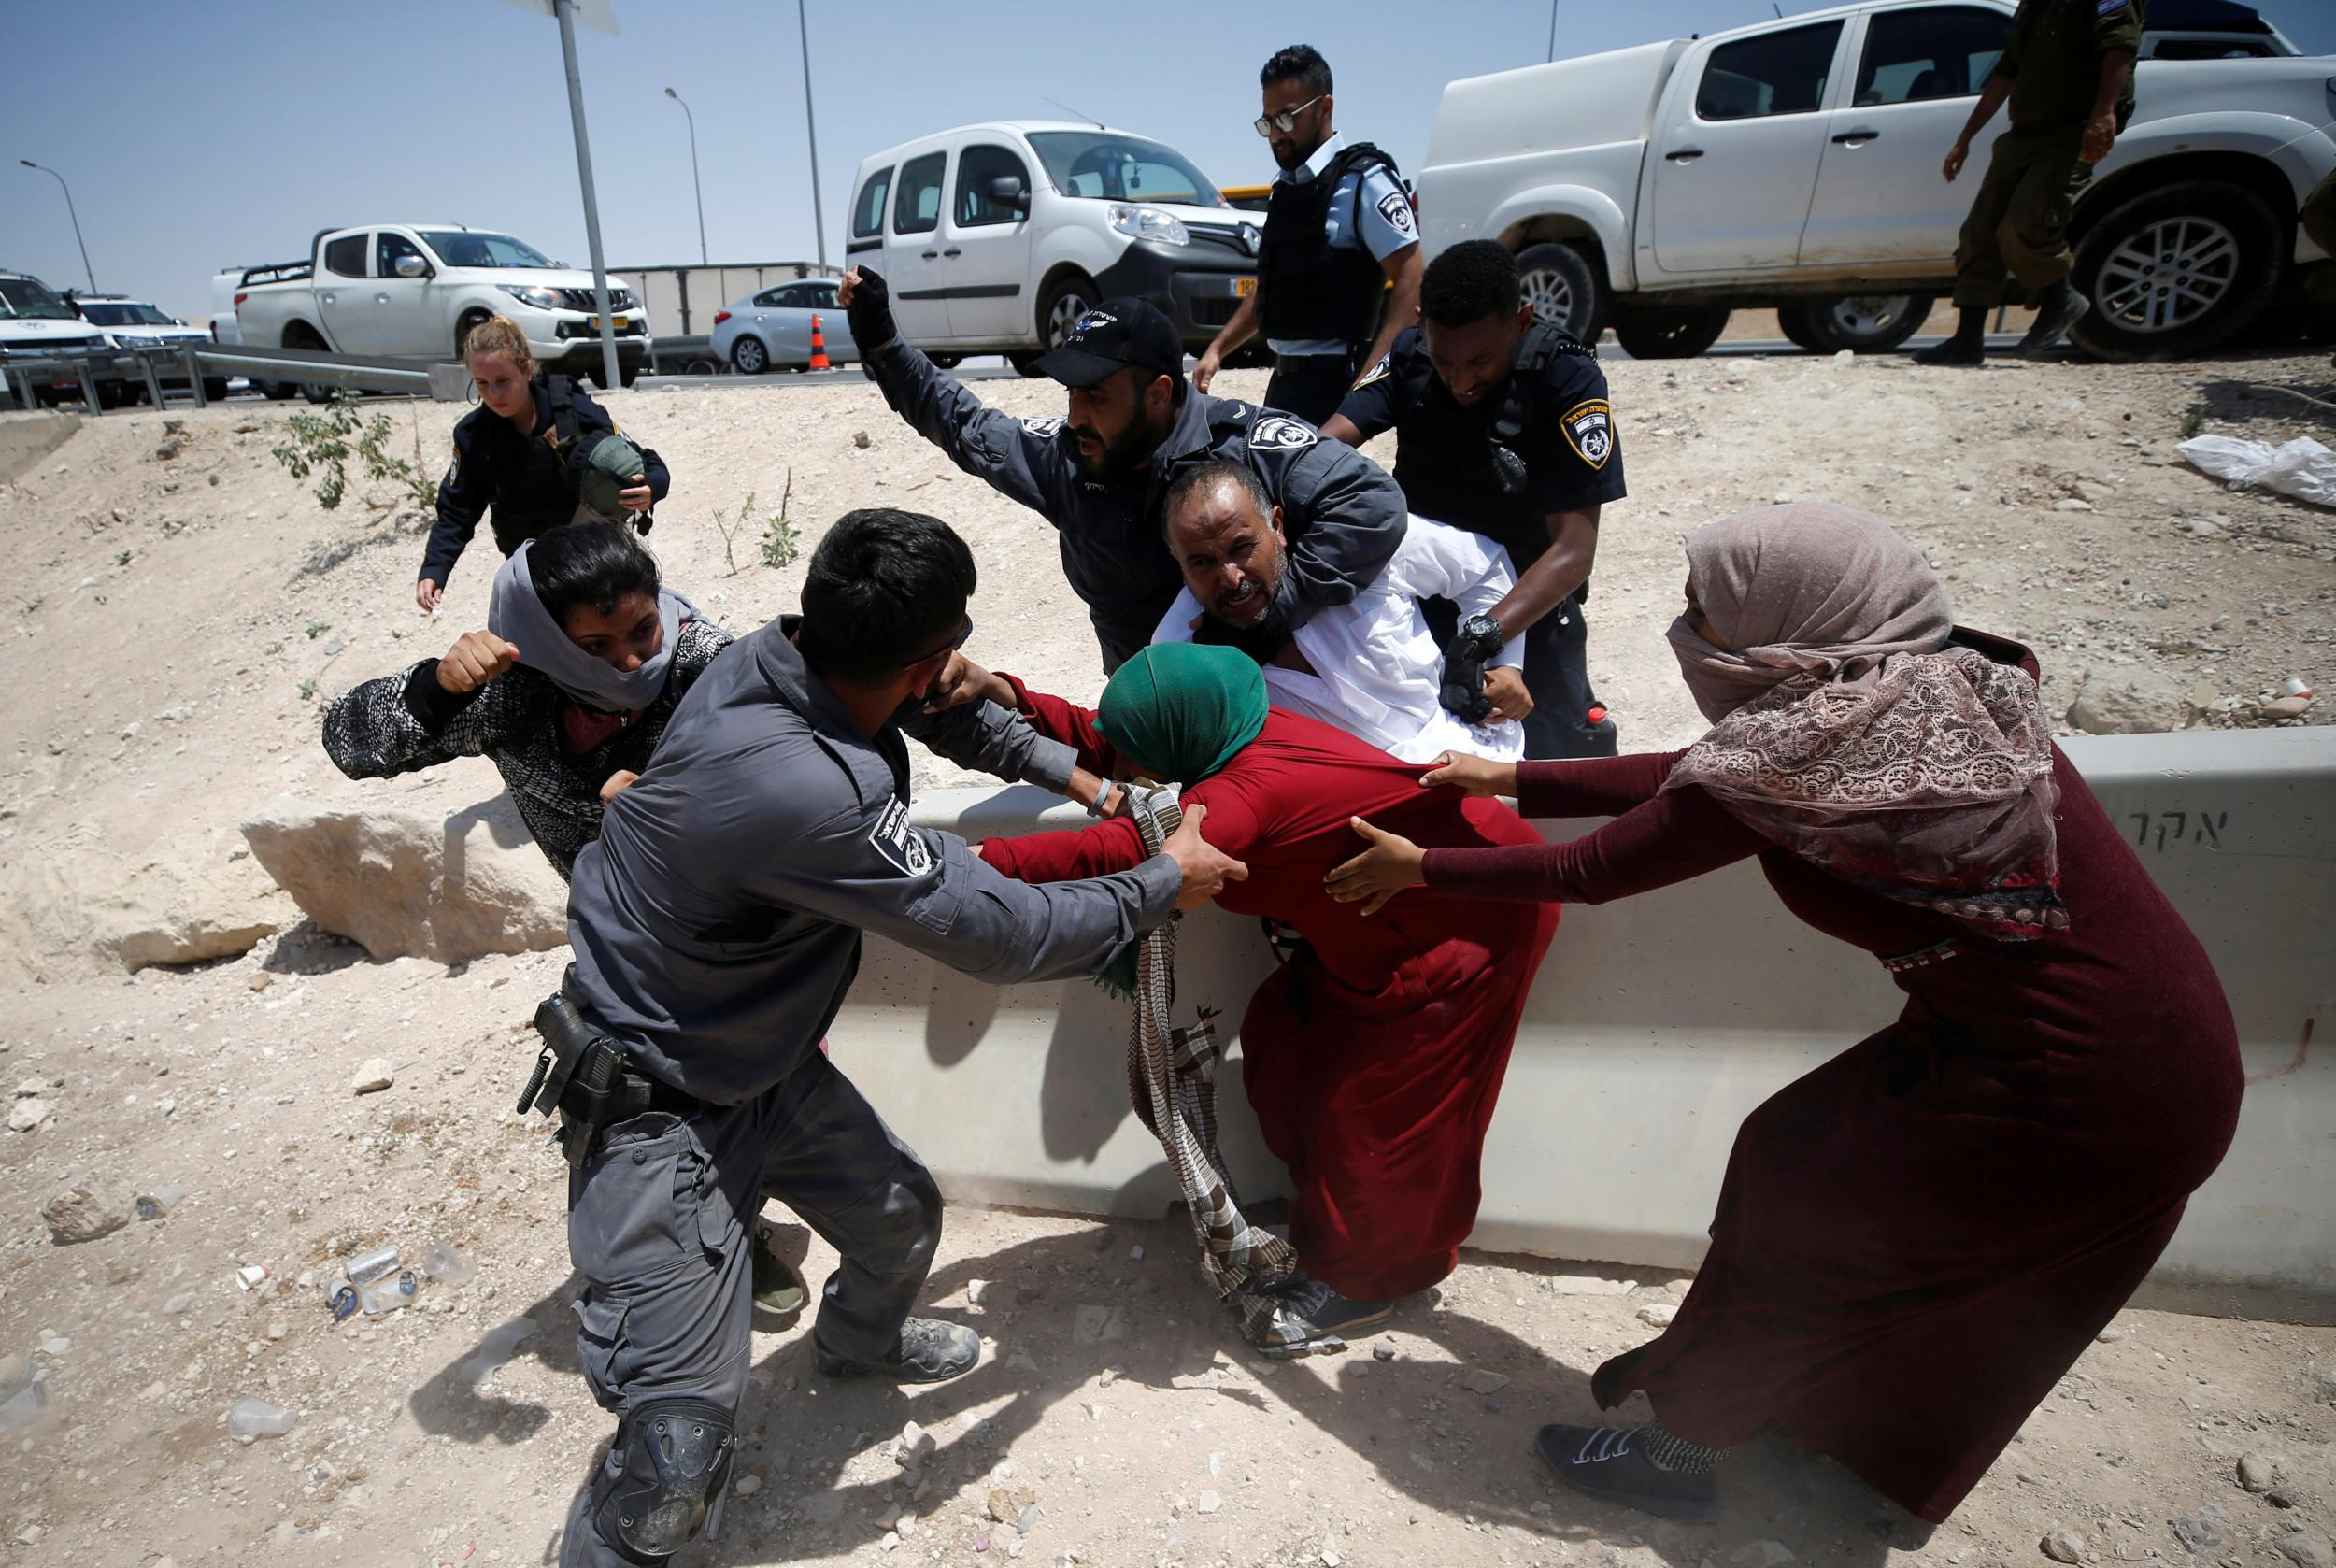 Israel bars diplomats from visiting Bedouin Palestinian village slated for demolition